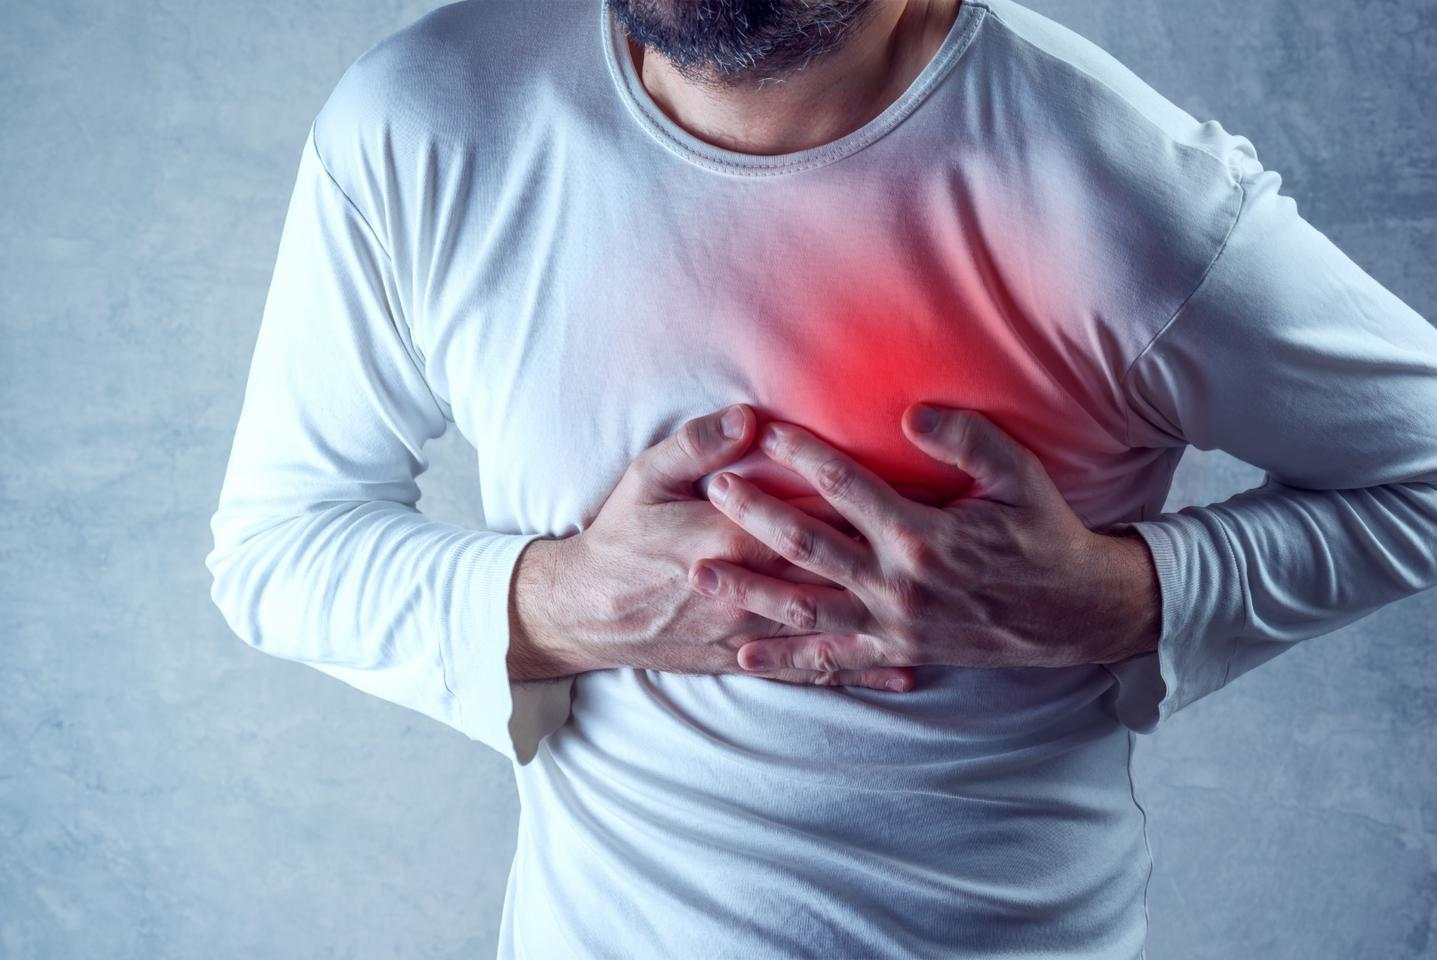 The drug-containingnanospheres could be injected into the bloodstream of heart attack patients